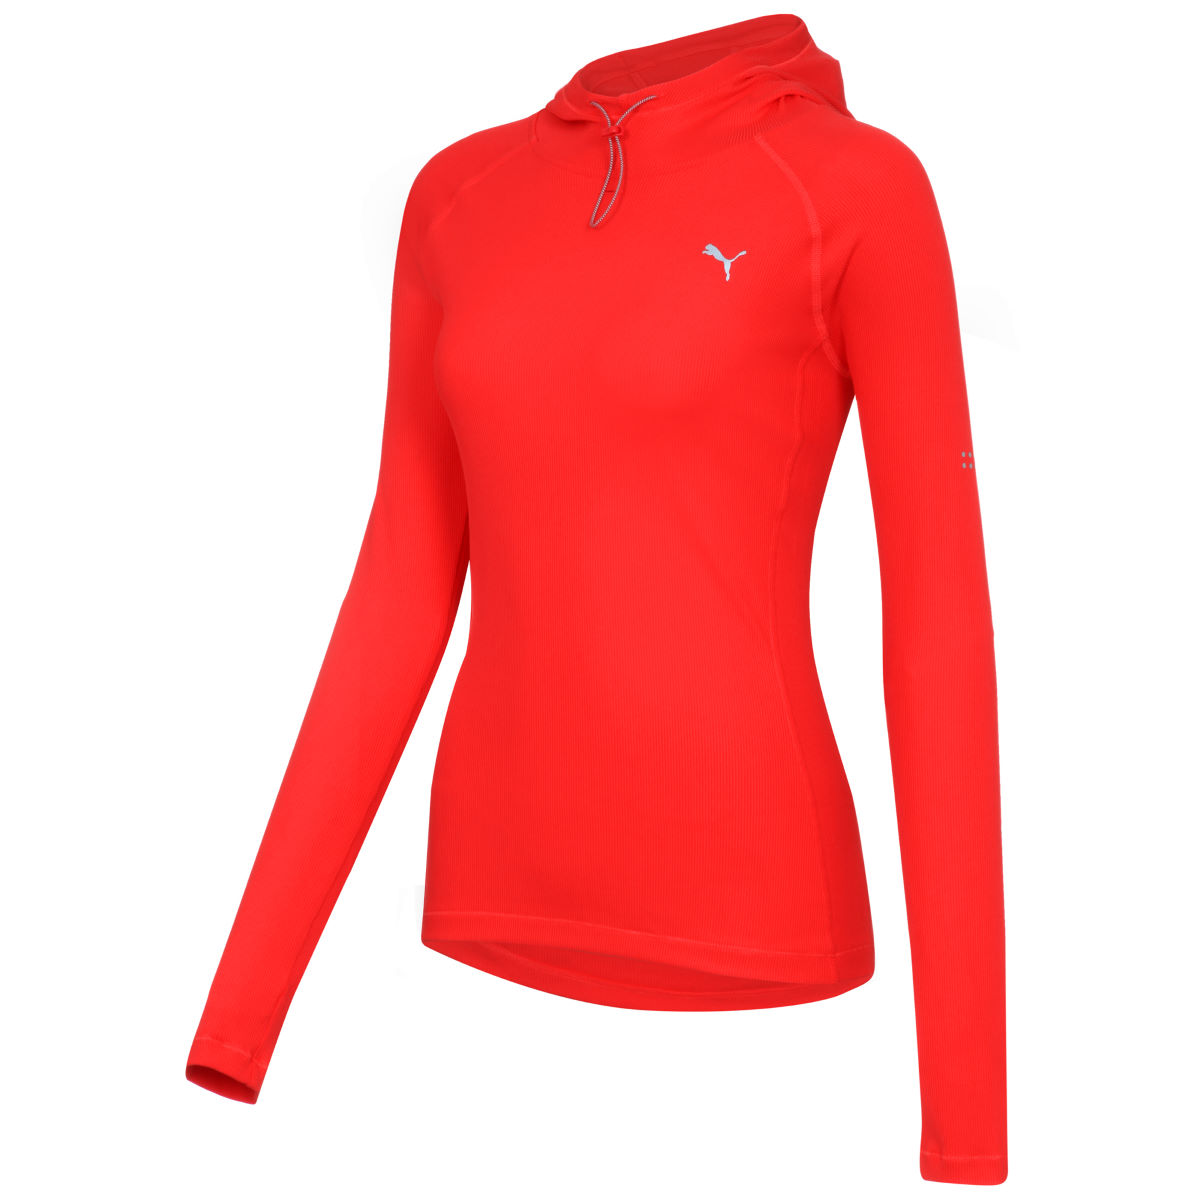 Maillot Femme Puma Run (capuche) - XL Poppy Red